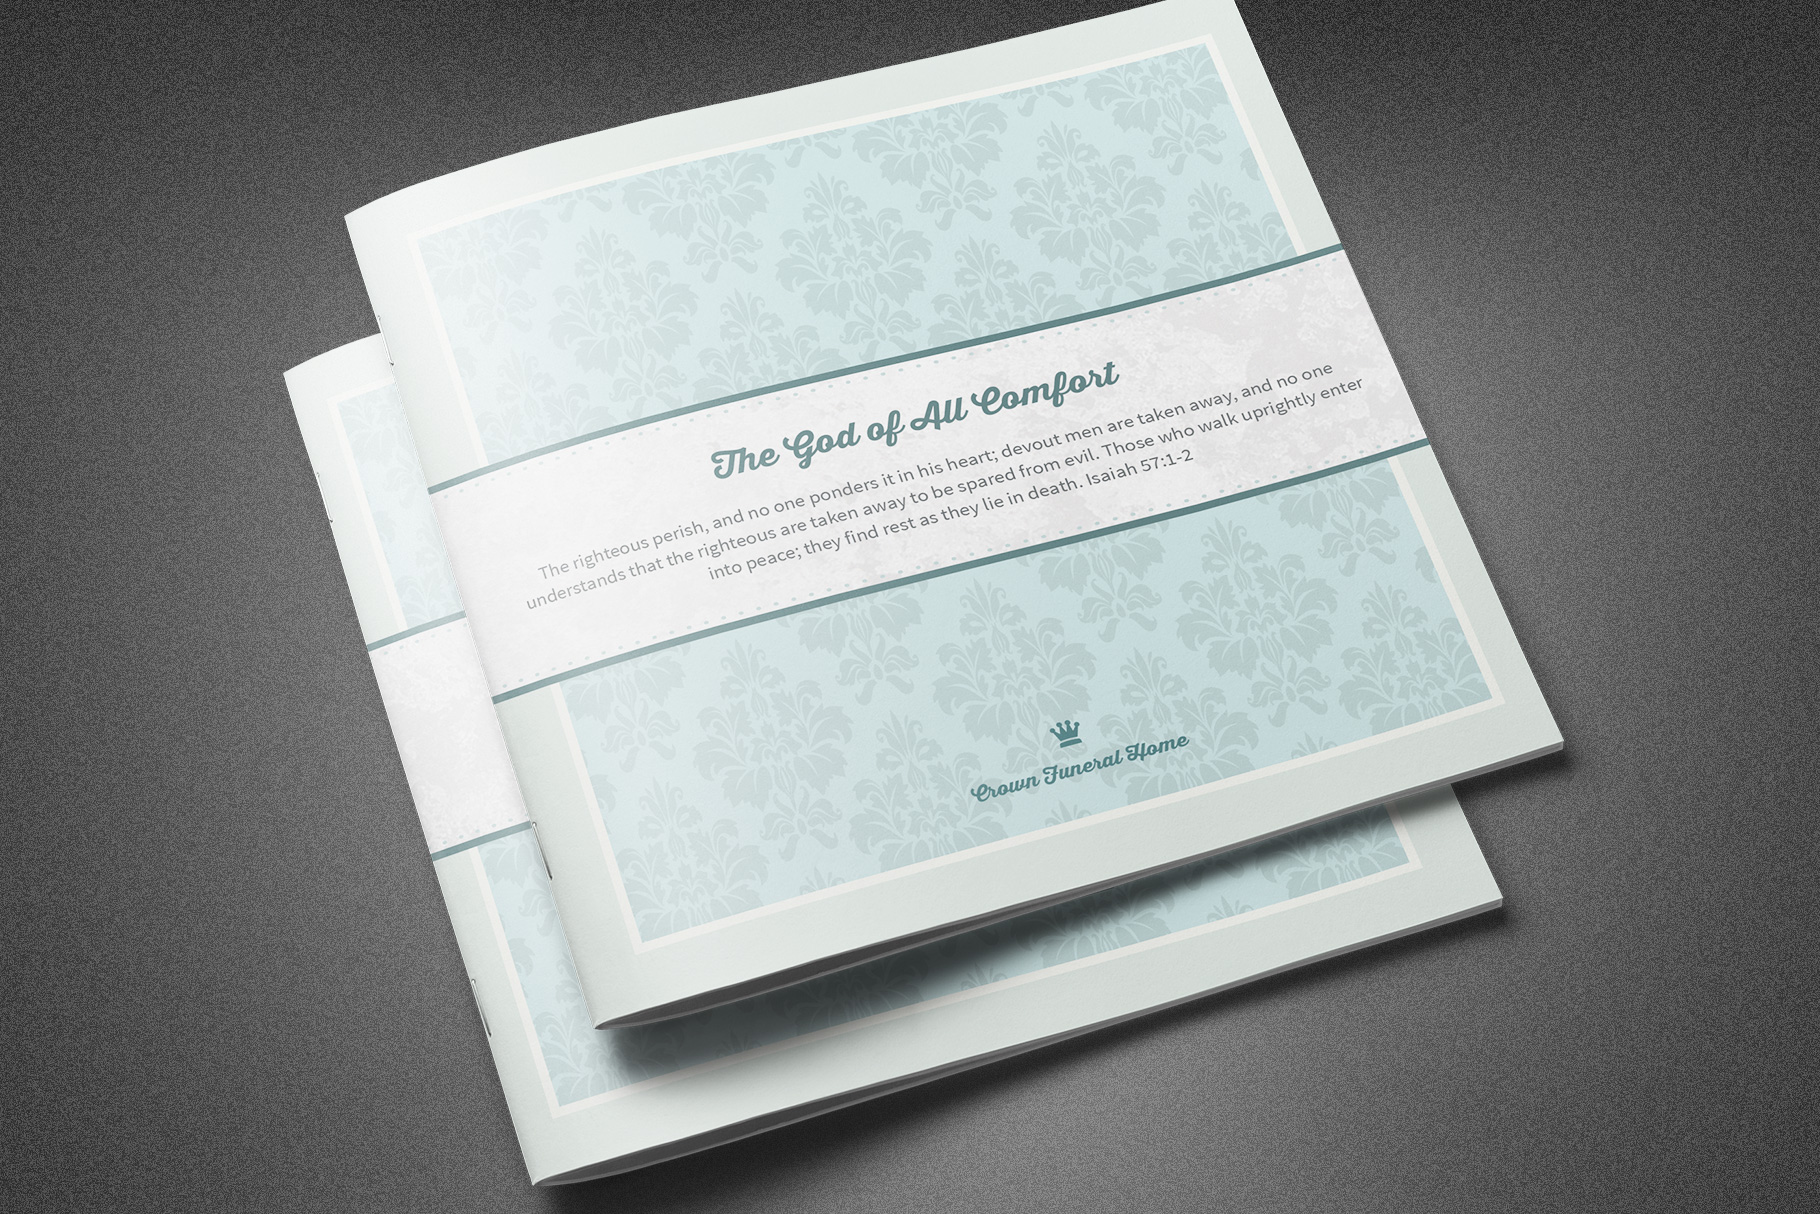 All Comfort Funeral Program Template example image 2